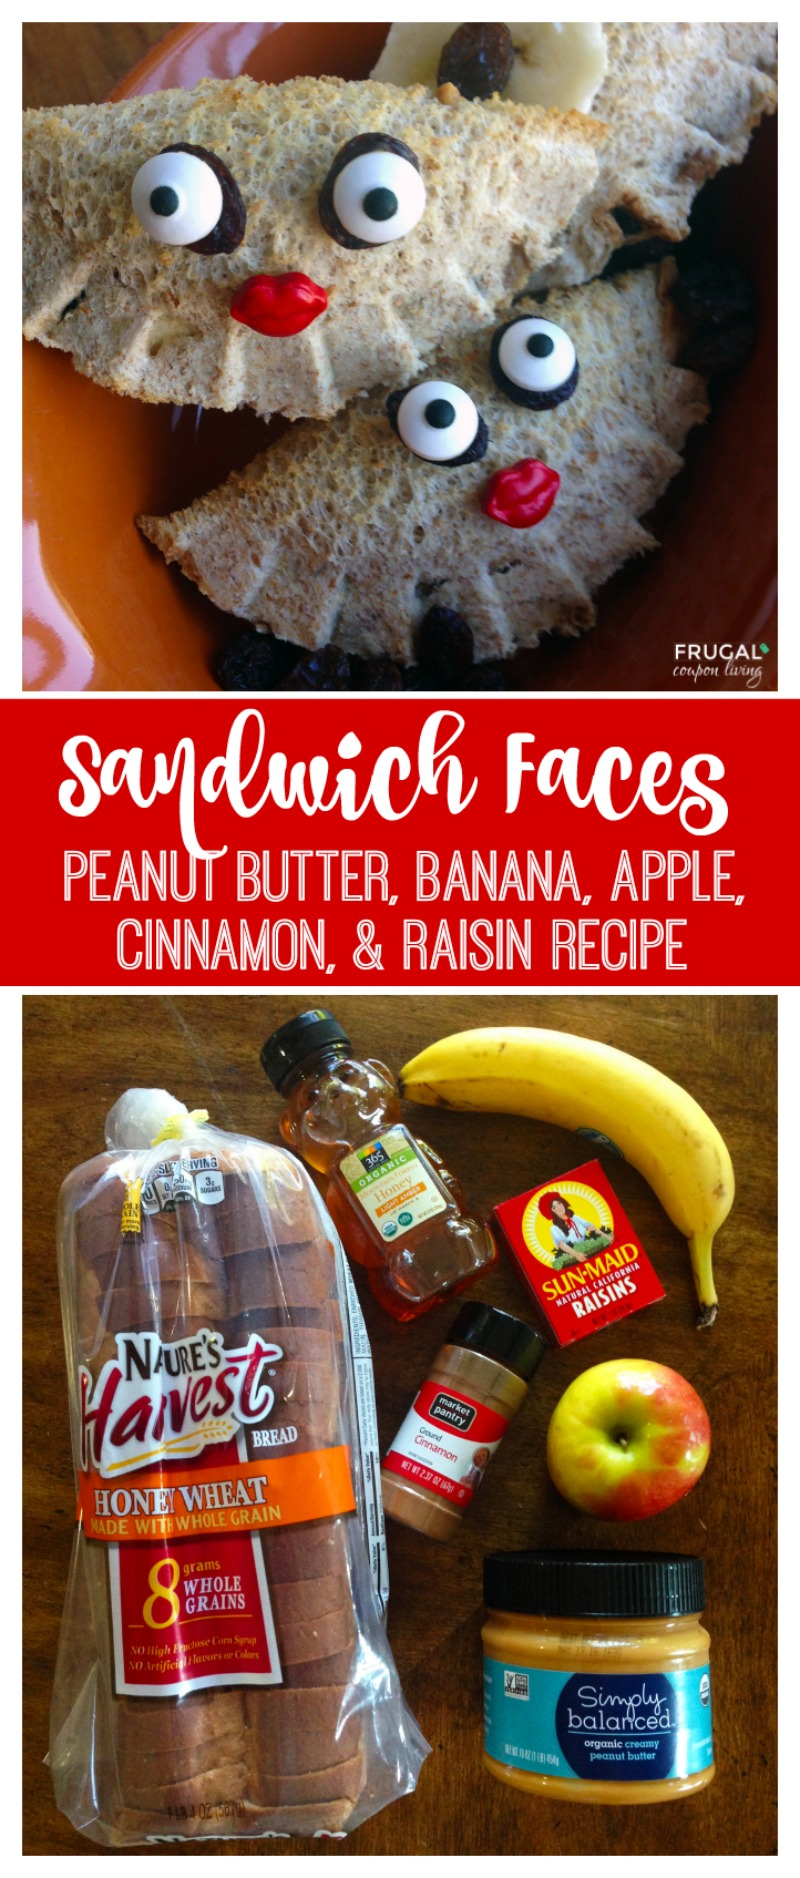 Sandwich-Faces-Collage-Frugal-Coupon-Living